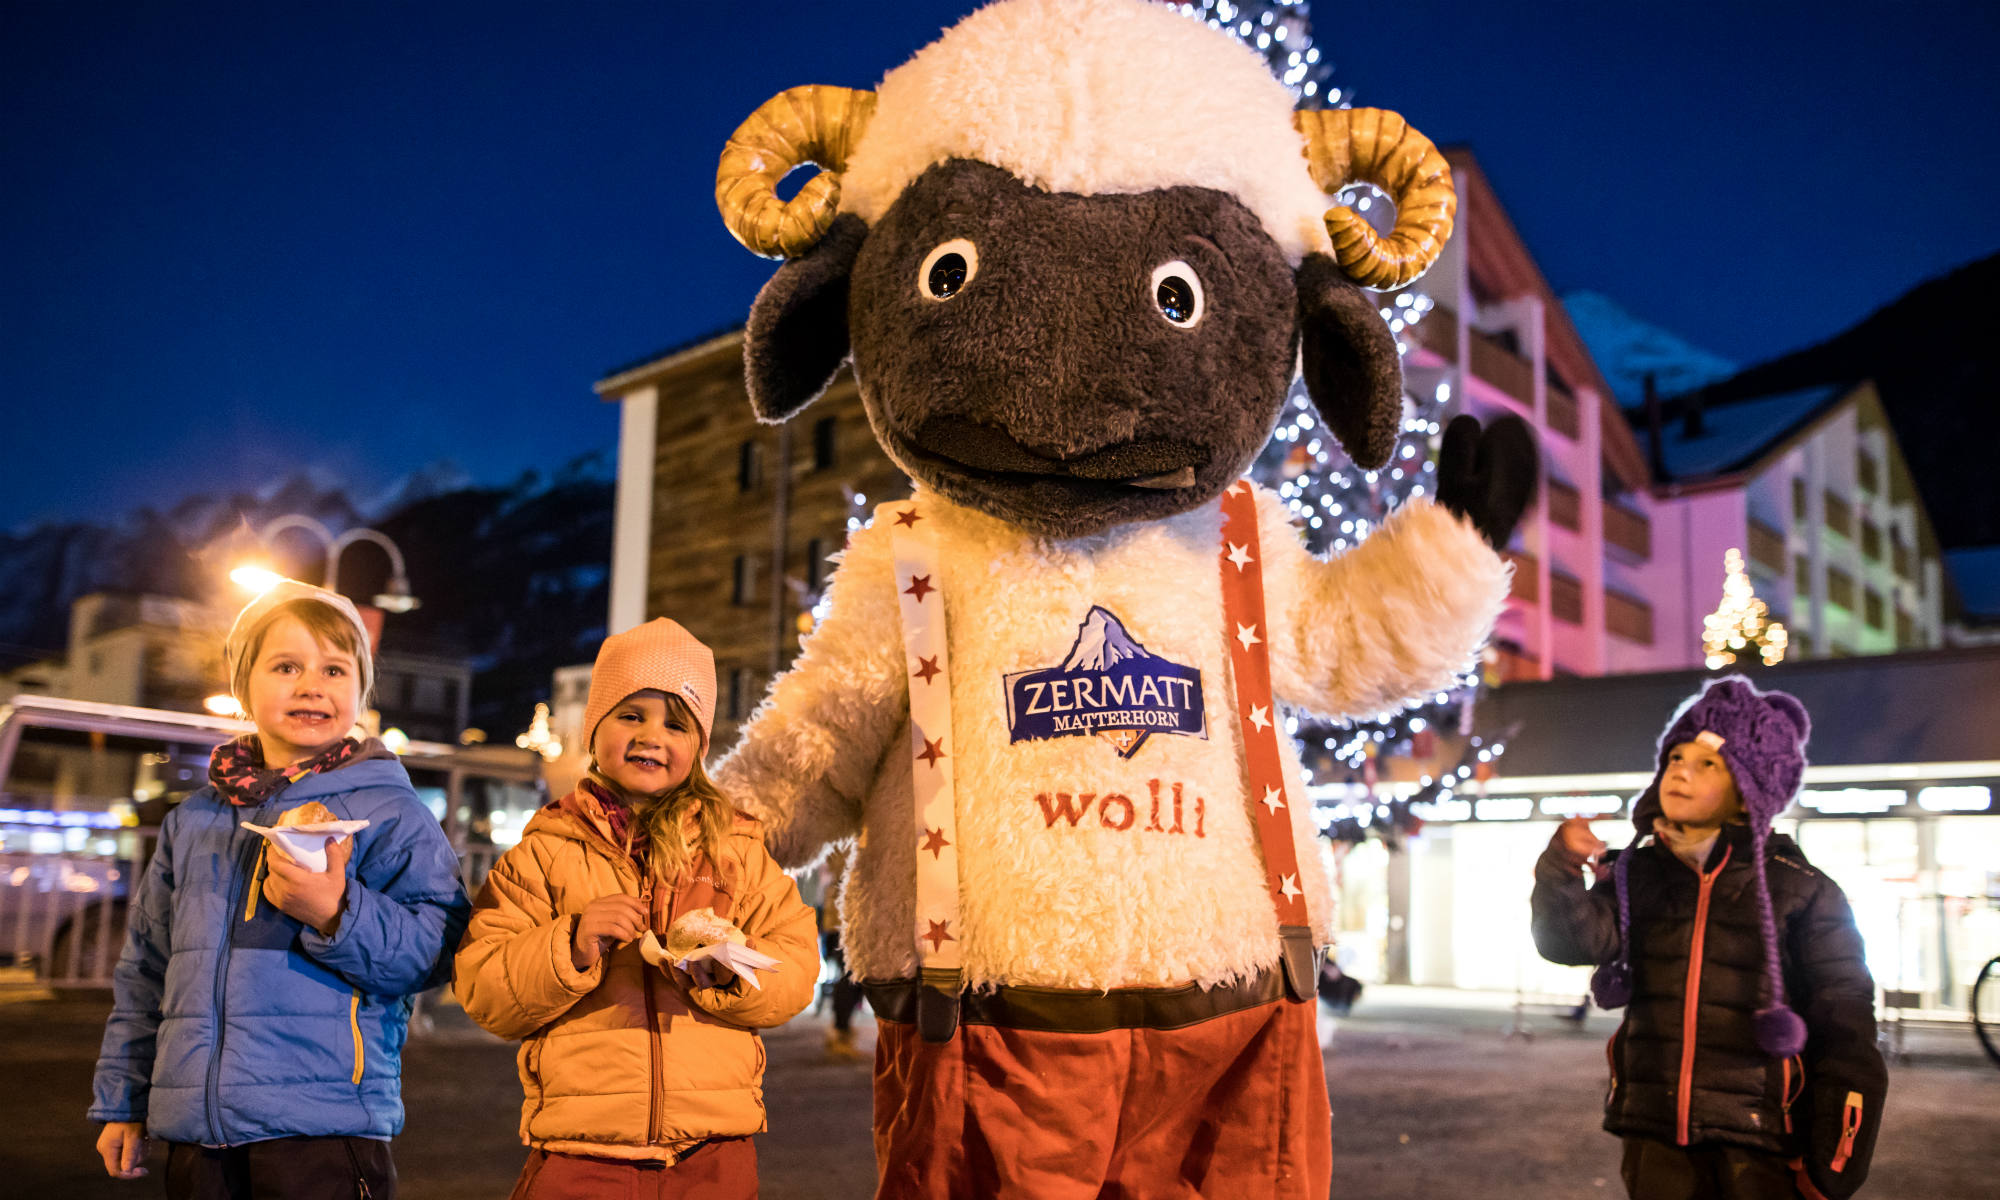 Zermatt's mascot, Wolli, is joined by three kids at the local Christmas festivities.